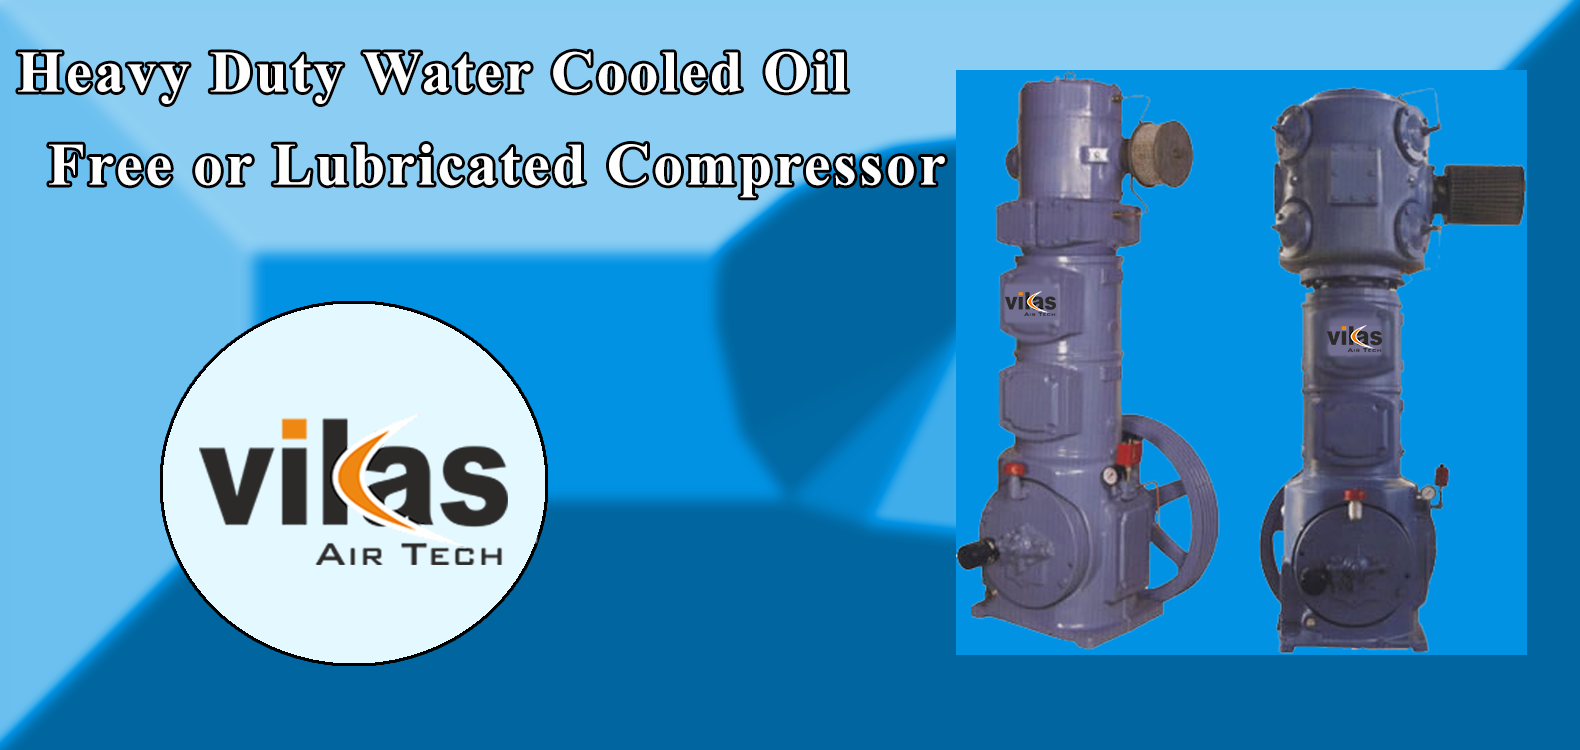 Heavy Duty Water Cooled Oil Lubricated Compressor, Air Compressor Manufacturers in India, Air Compressor Manufacturers in Ahmedabad, Air Compressor Manufacturers in Gujarat